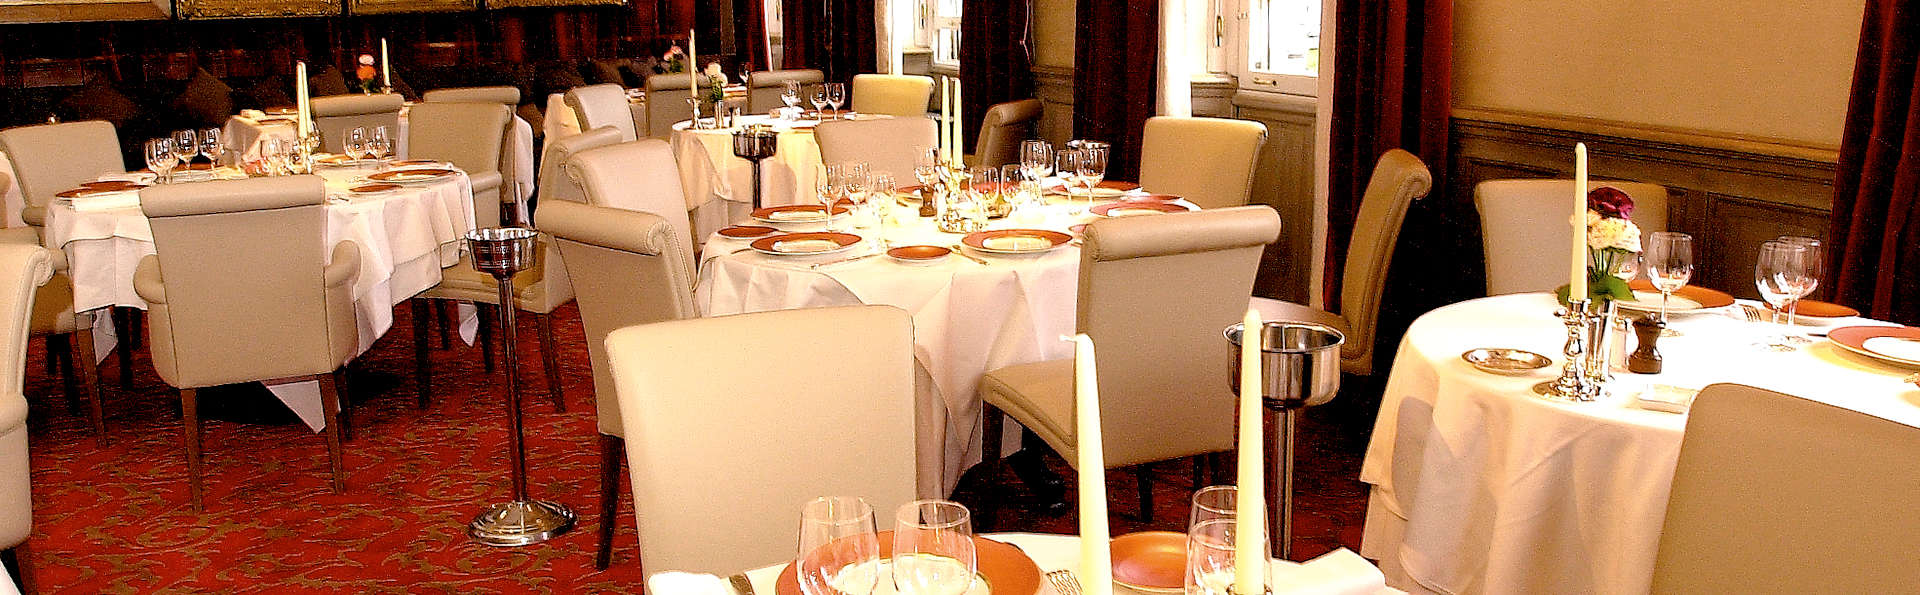 Le Grand Monarque - Chartres - Edit_Restaurant2.jpg